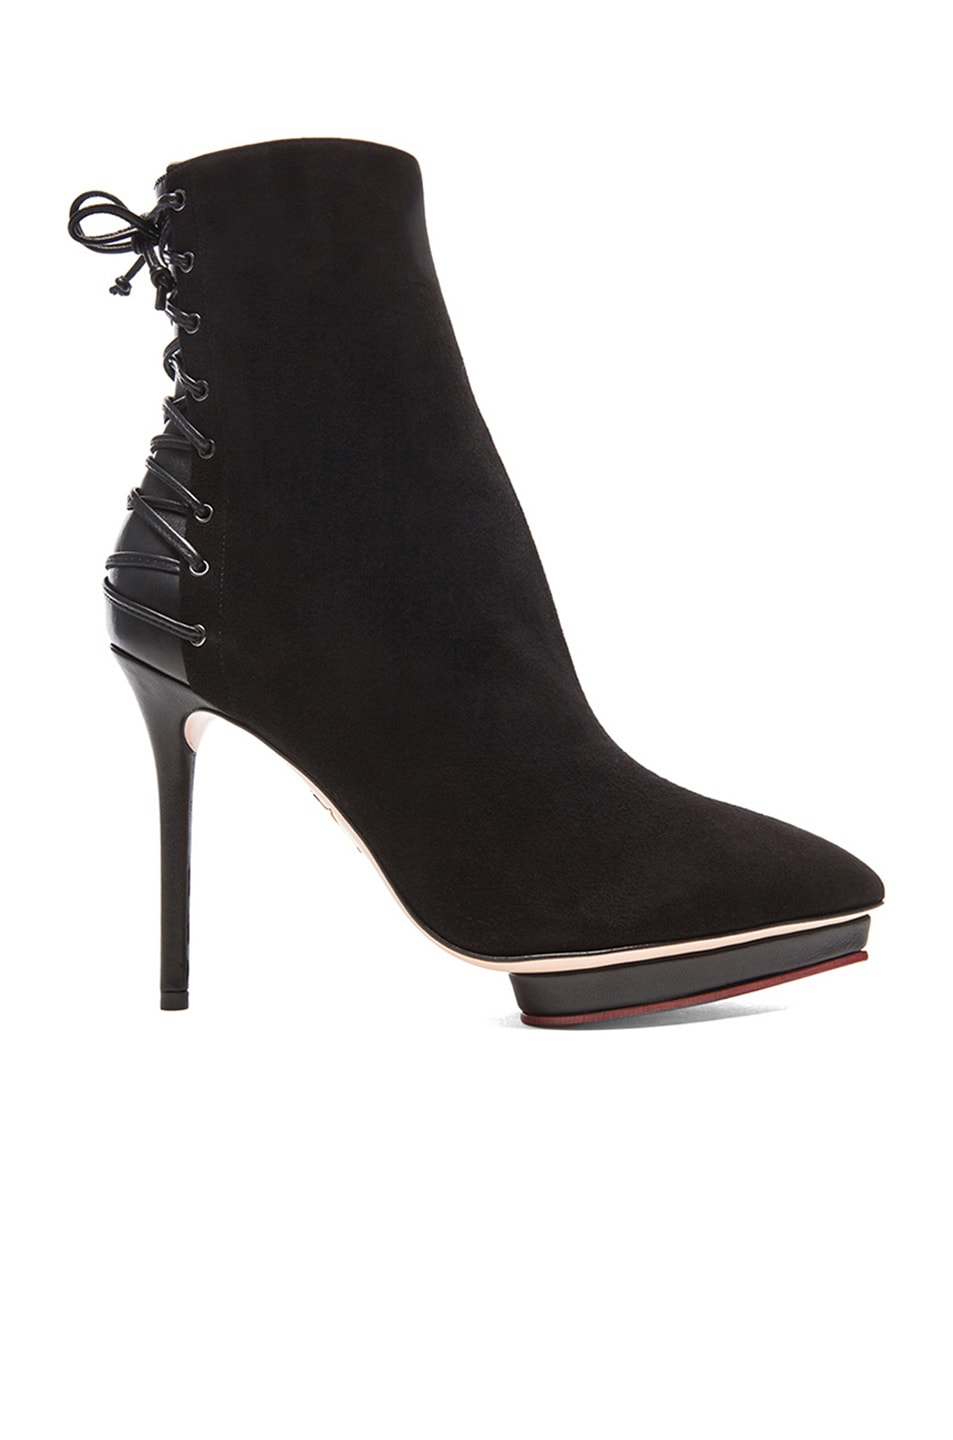 Image 1 of Charlotte Olympia Laced-Up Deborah Suede Booties in Black